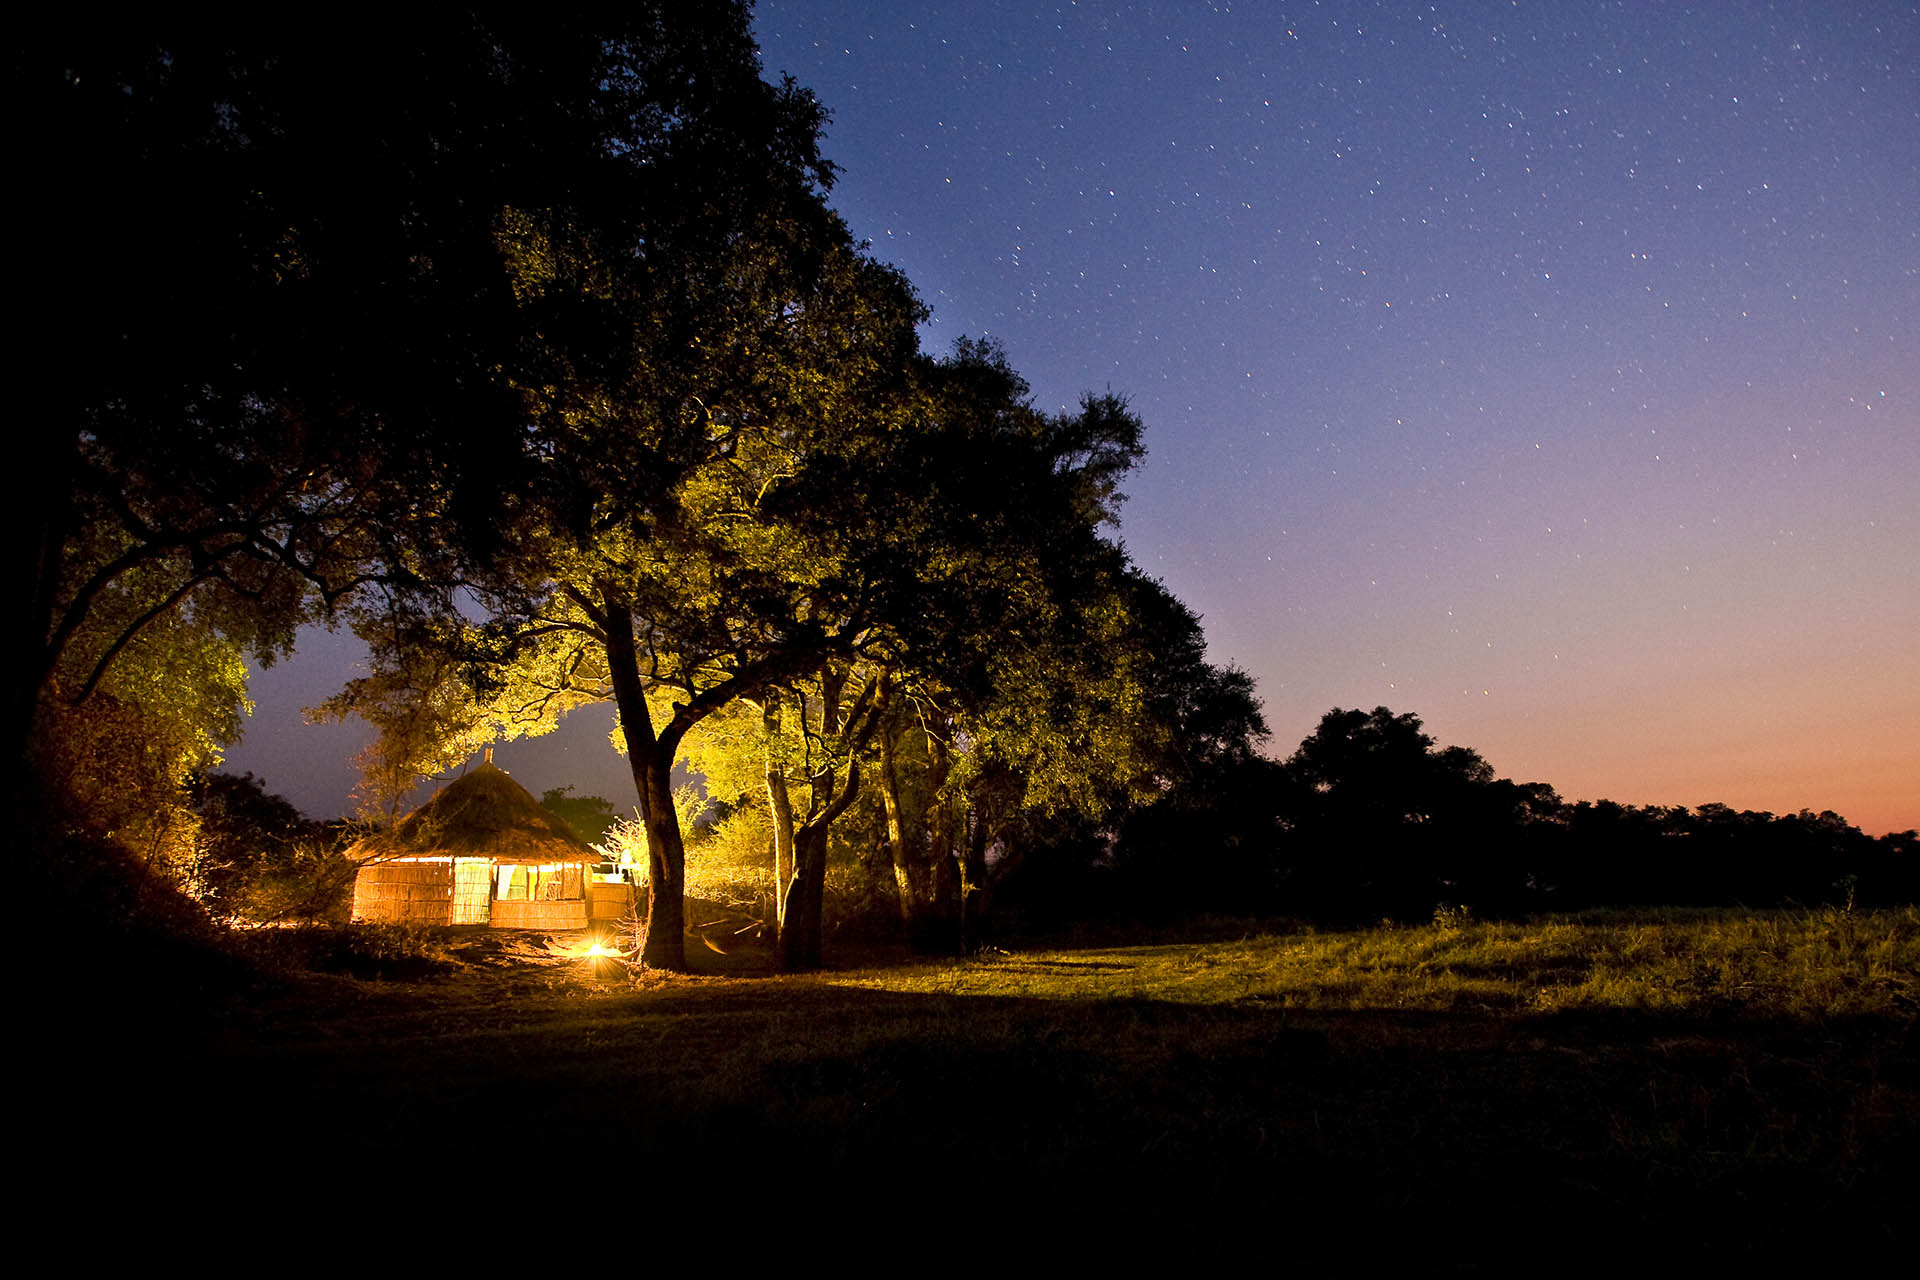 south luangwa national park tours-wet-wild-south-luangwa-lake-malawi-7-nights--malawian-style-malawi-adventures-experiences-specialist-tour-operator-crocodile-camp